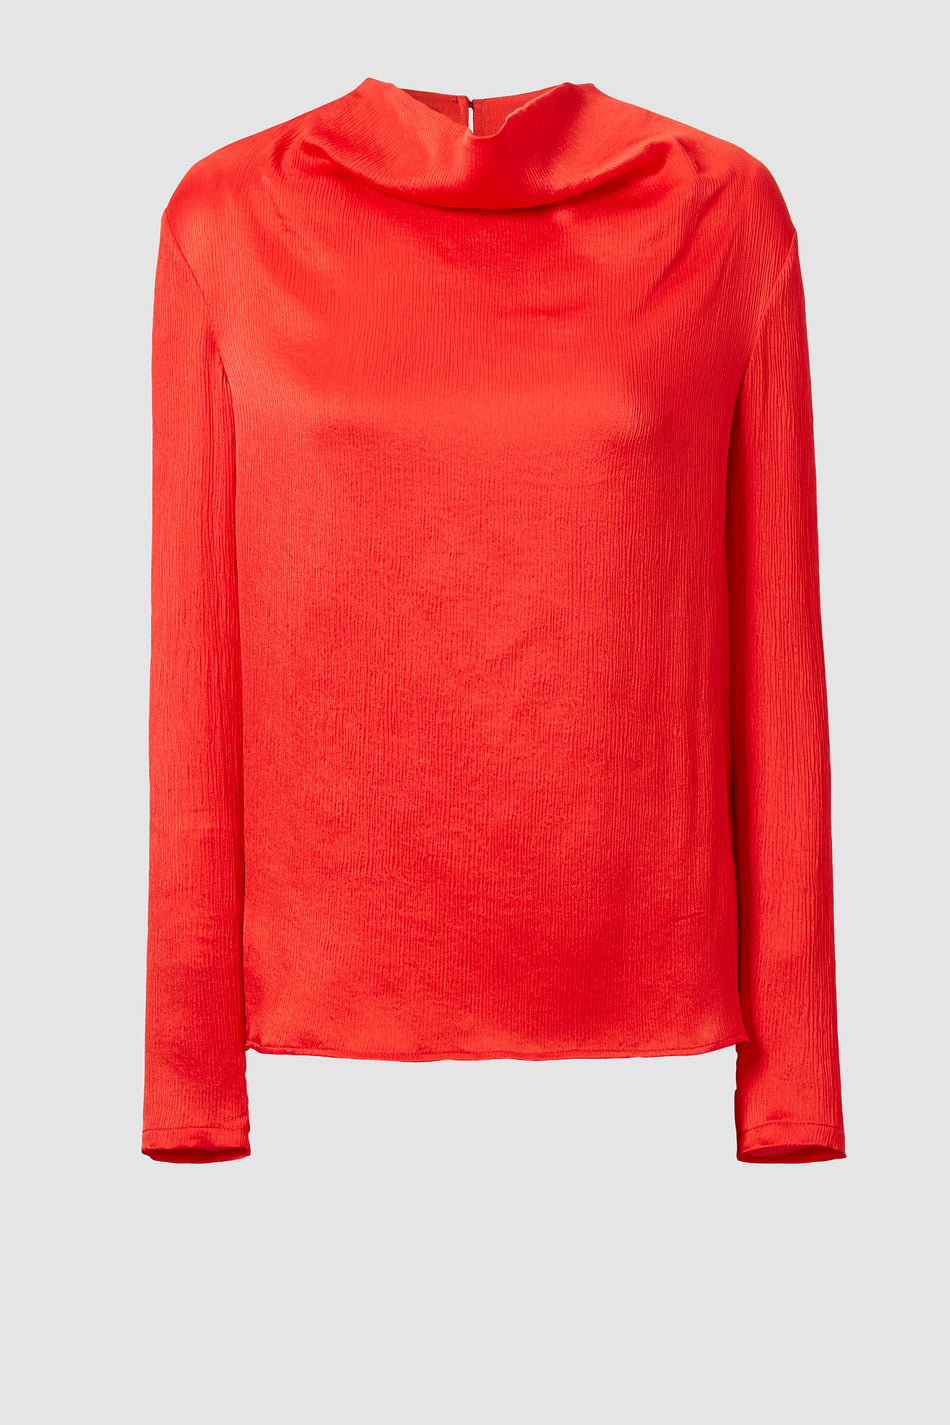 Tove Leone Long Sleeve Silk Top Red